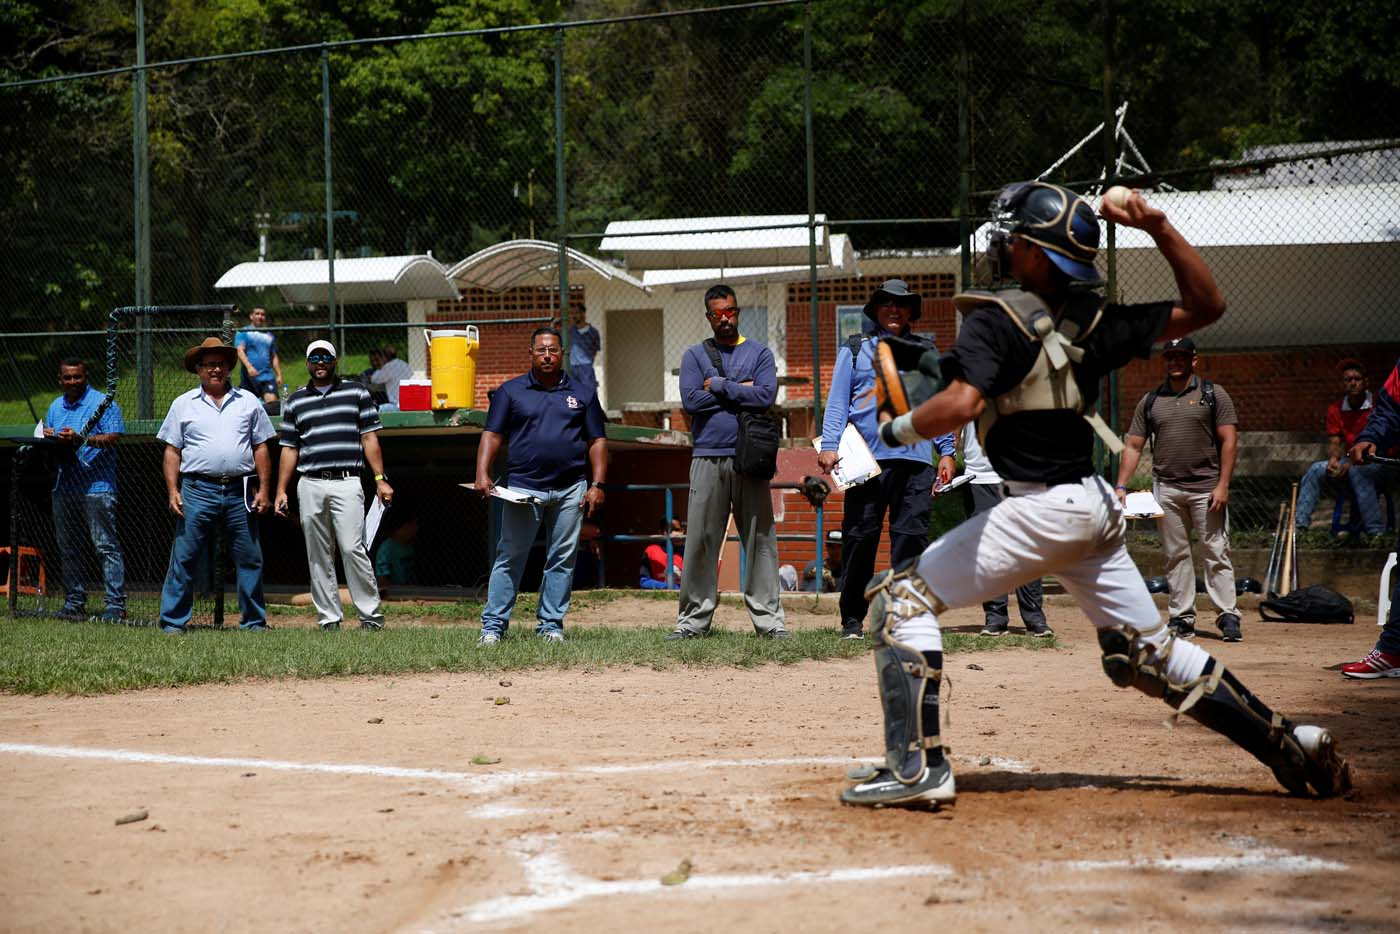 Trainers and scouts look at Rivaldo Avila (R) during a baseball showcase in Caracas, Venezuela August 22, 2017. Picture taken August 22, 2017. REUTERS/Carlos Garcia Rawlins